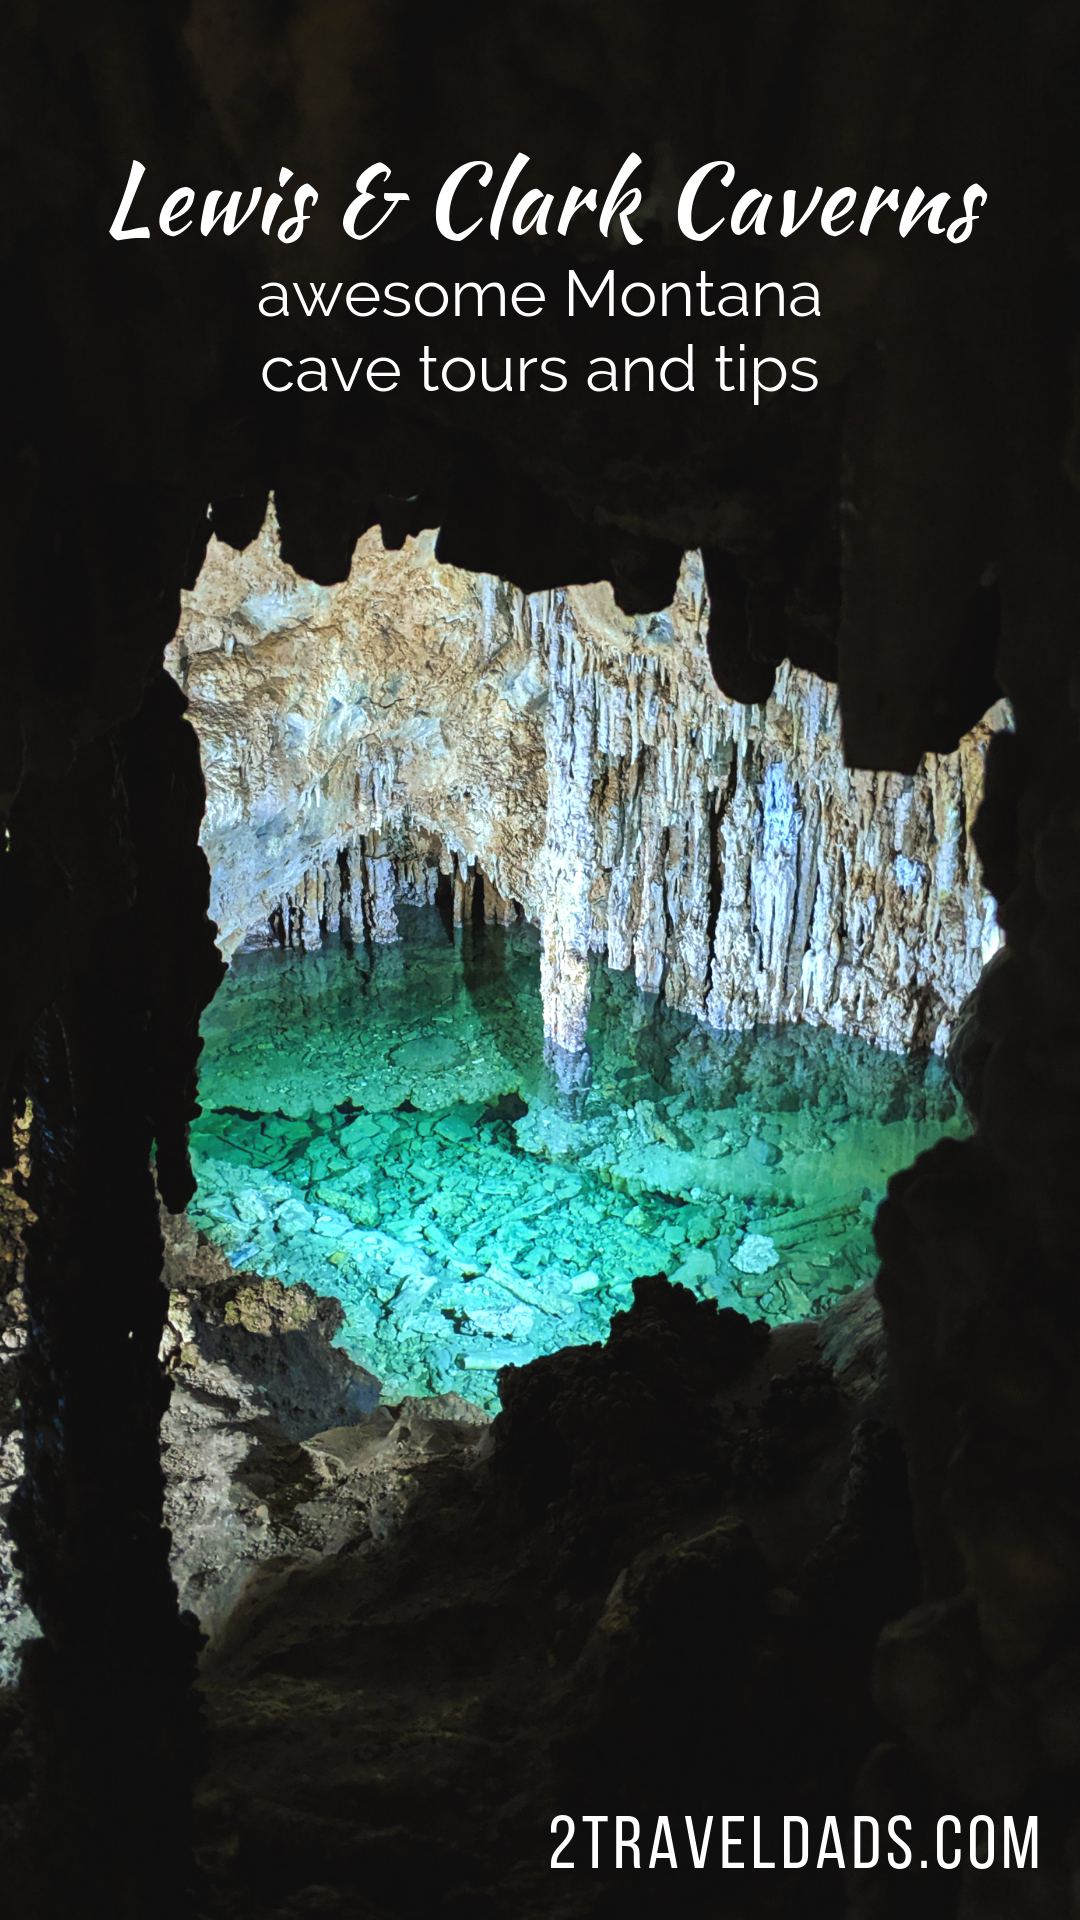 Visiting Lewis and Clark Caverns is a must when in Montana. Near Yellowstone and Bozeman, this Montana cave tour is remarkable and great for all ages.